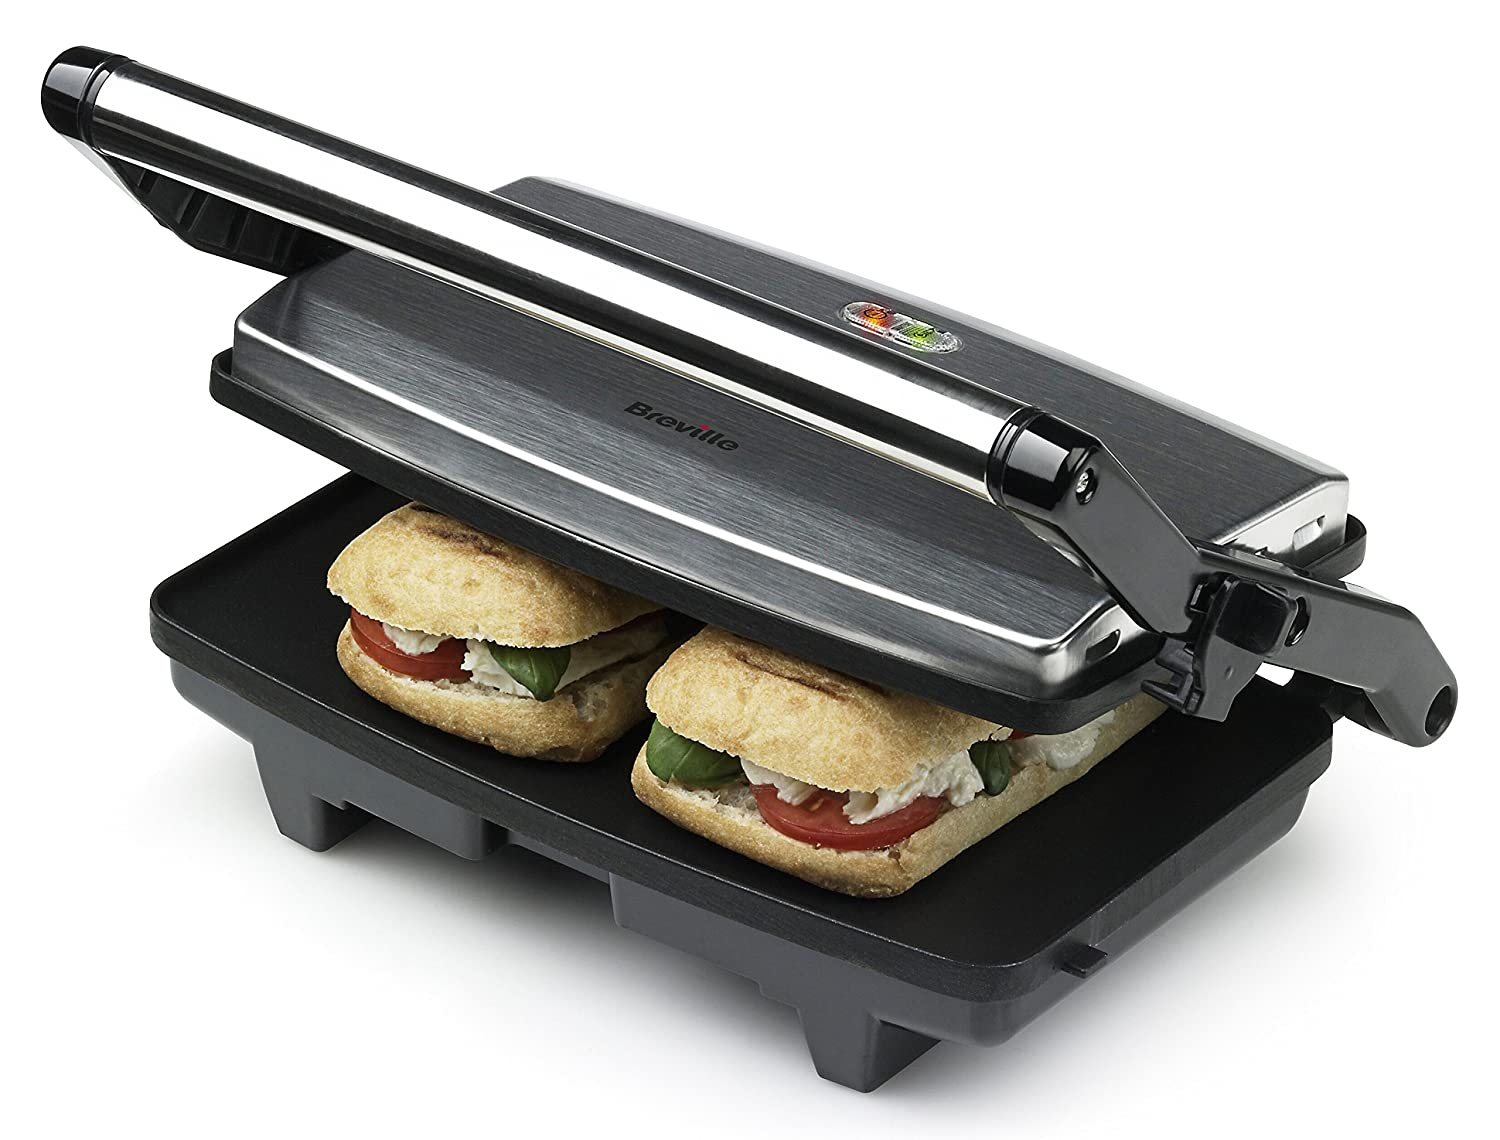 Breville VST049 Cafe Style Sandwich Press Amazon Kitchen